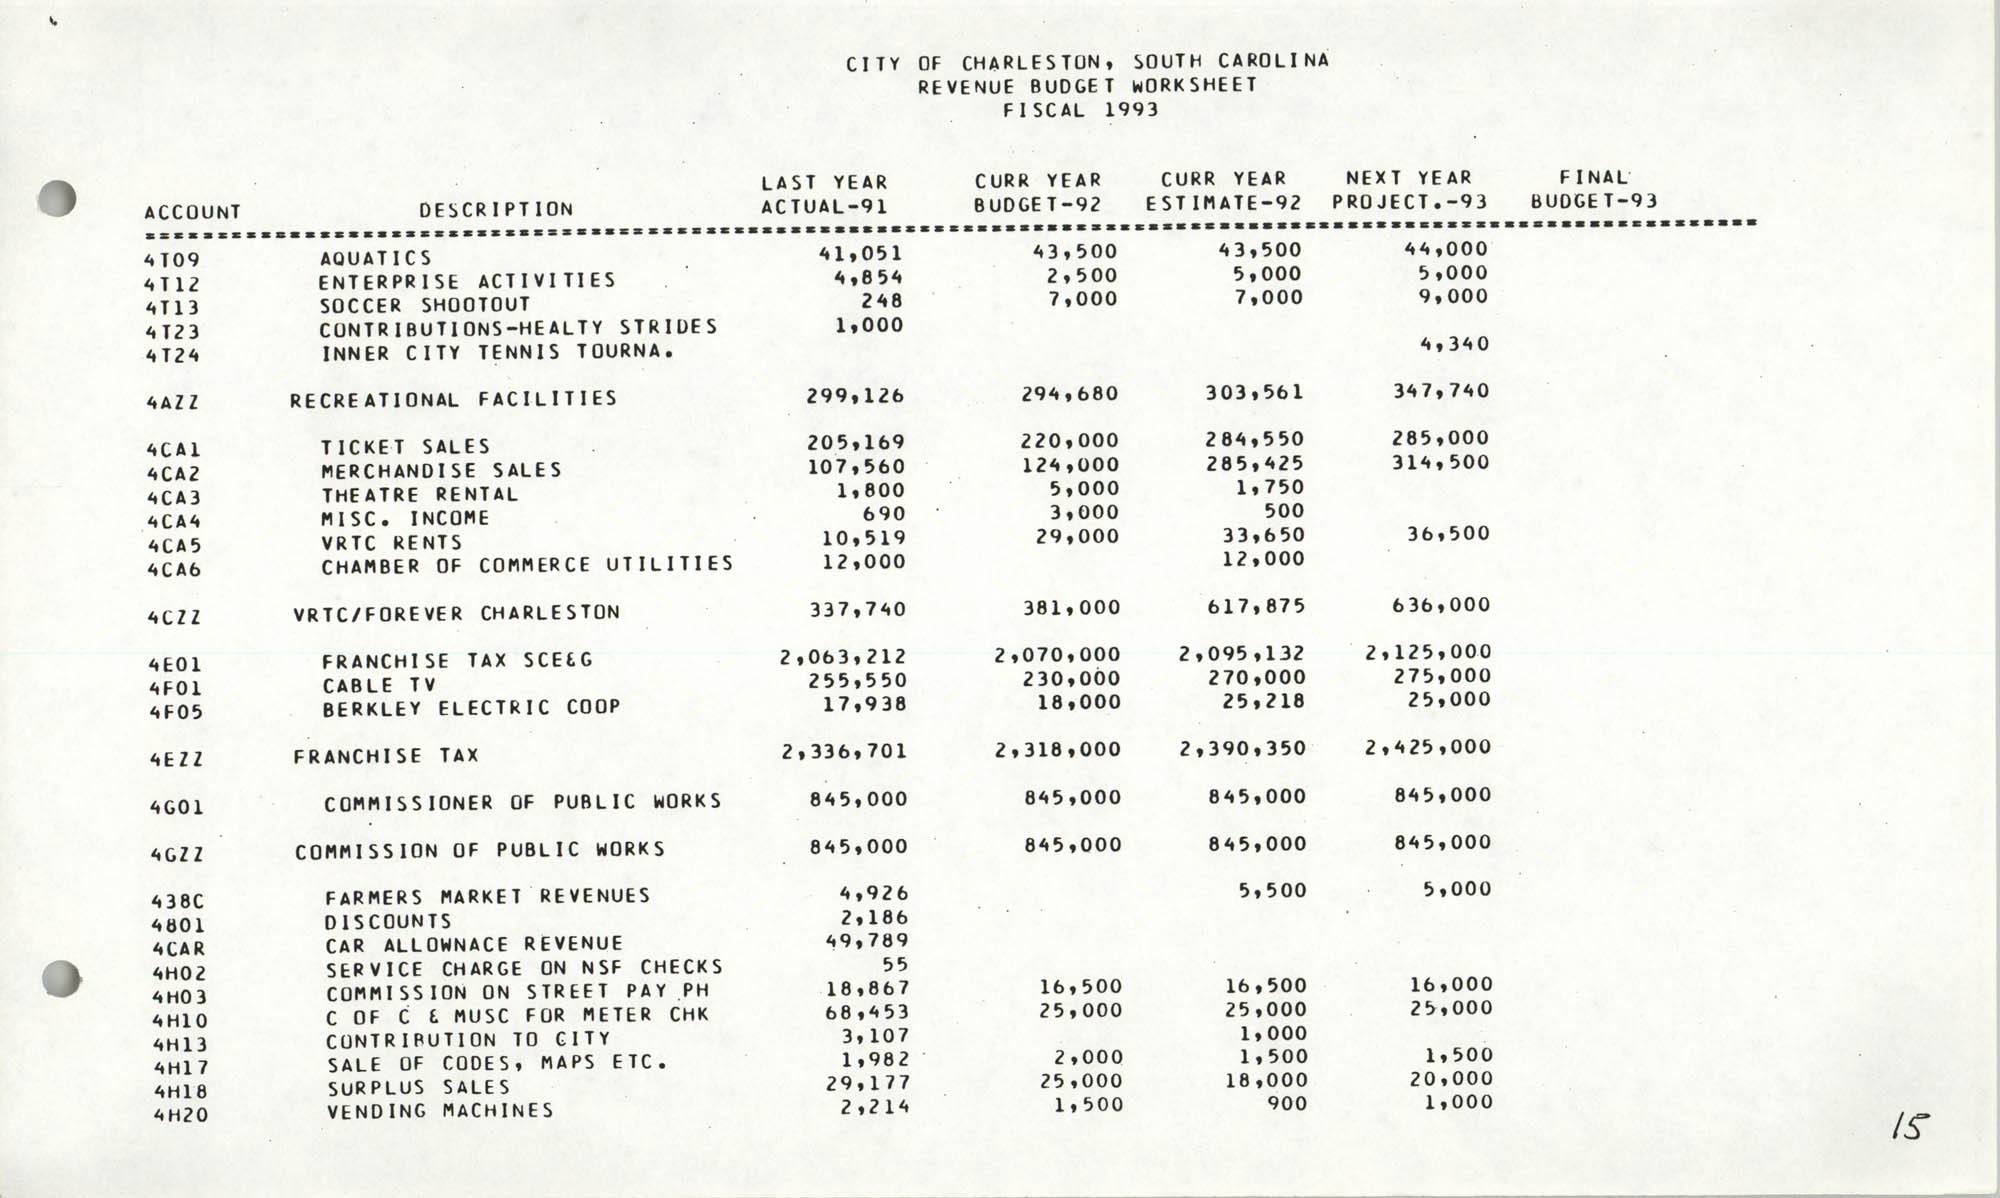 The City Council of Charleston, South Carolina, 1993 Budget, Page 15